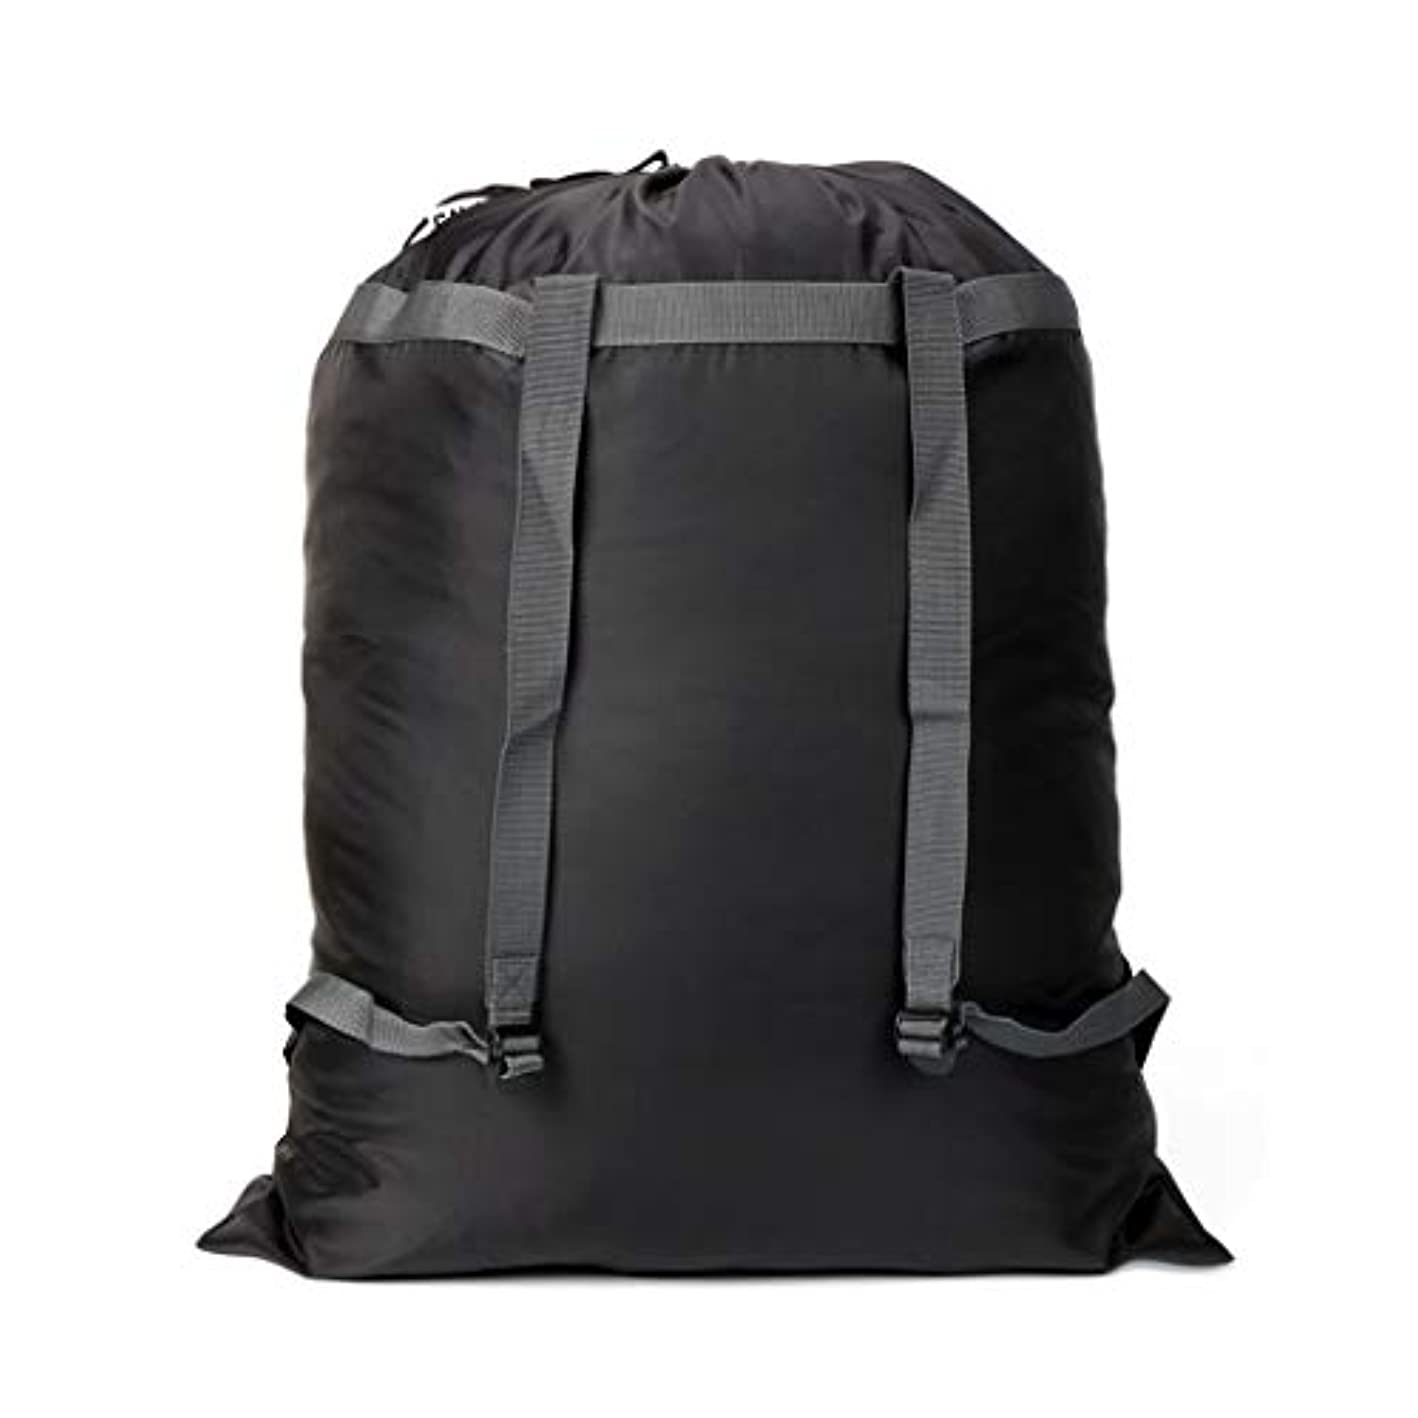 """CALACH Extra Large Laundry Bag Backpack, 27"""" x 34"""" - Sturdy and tear resistant polyester backpack with drawstring closure and Adjustable Shoulder Straps Machine Washable Fold Travel Black Laundry bags"""